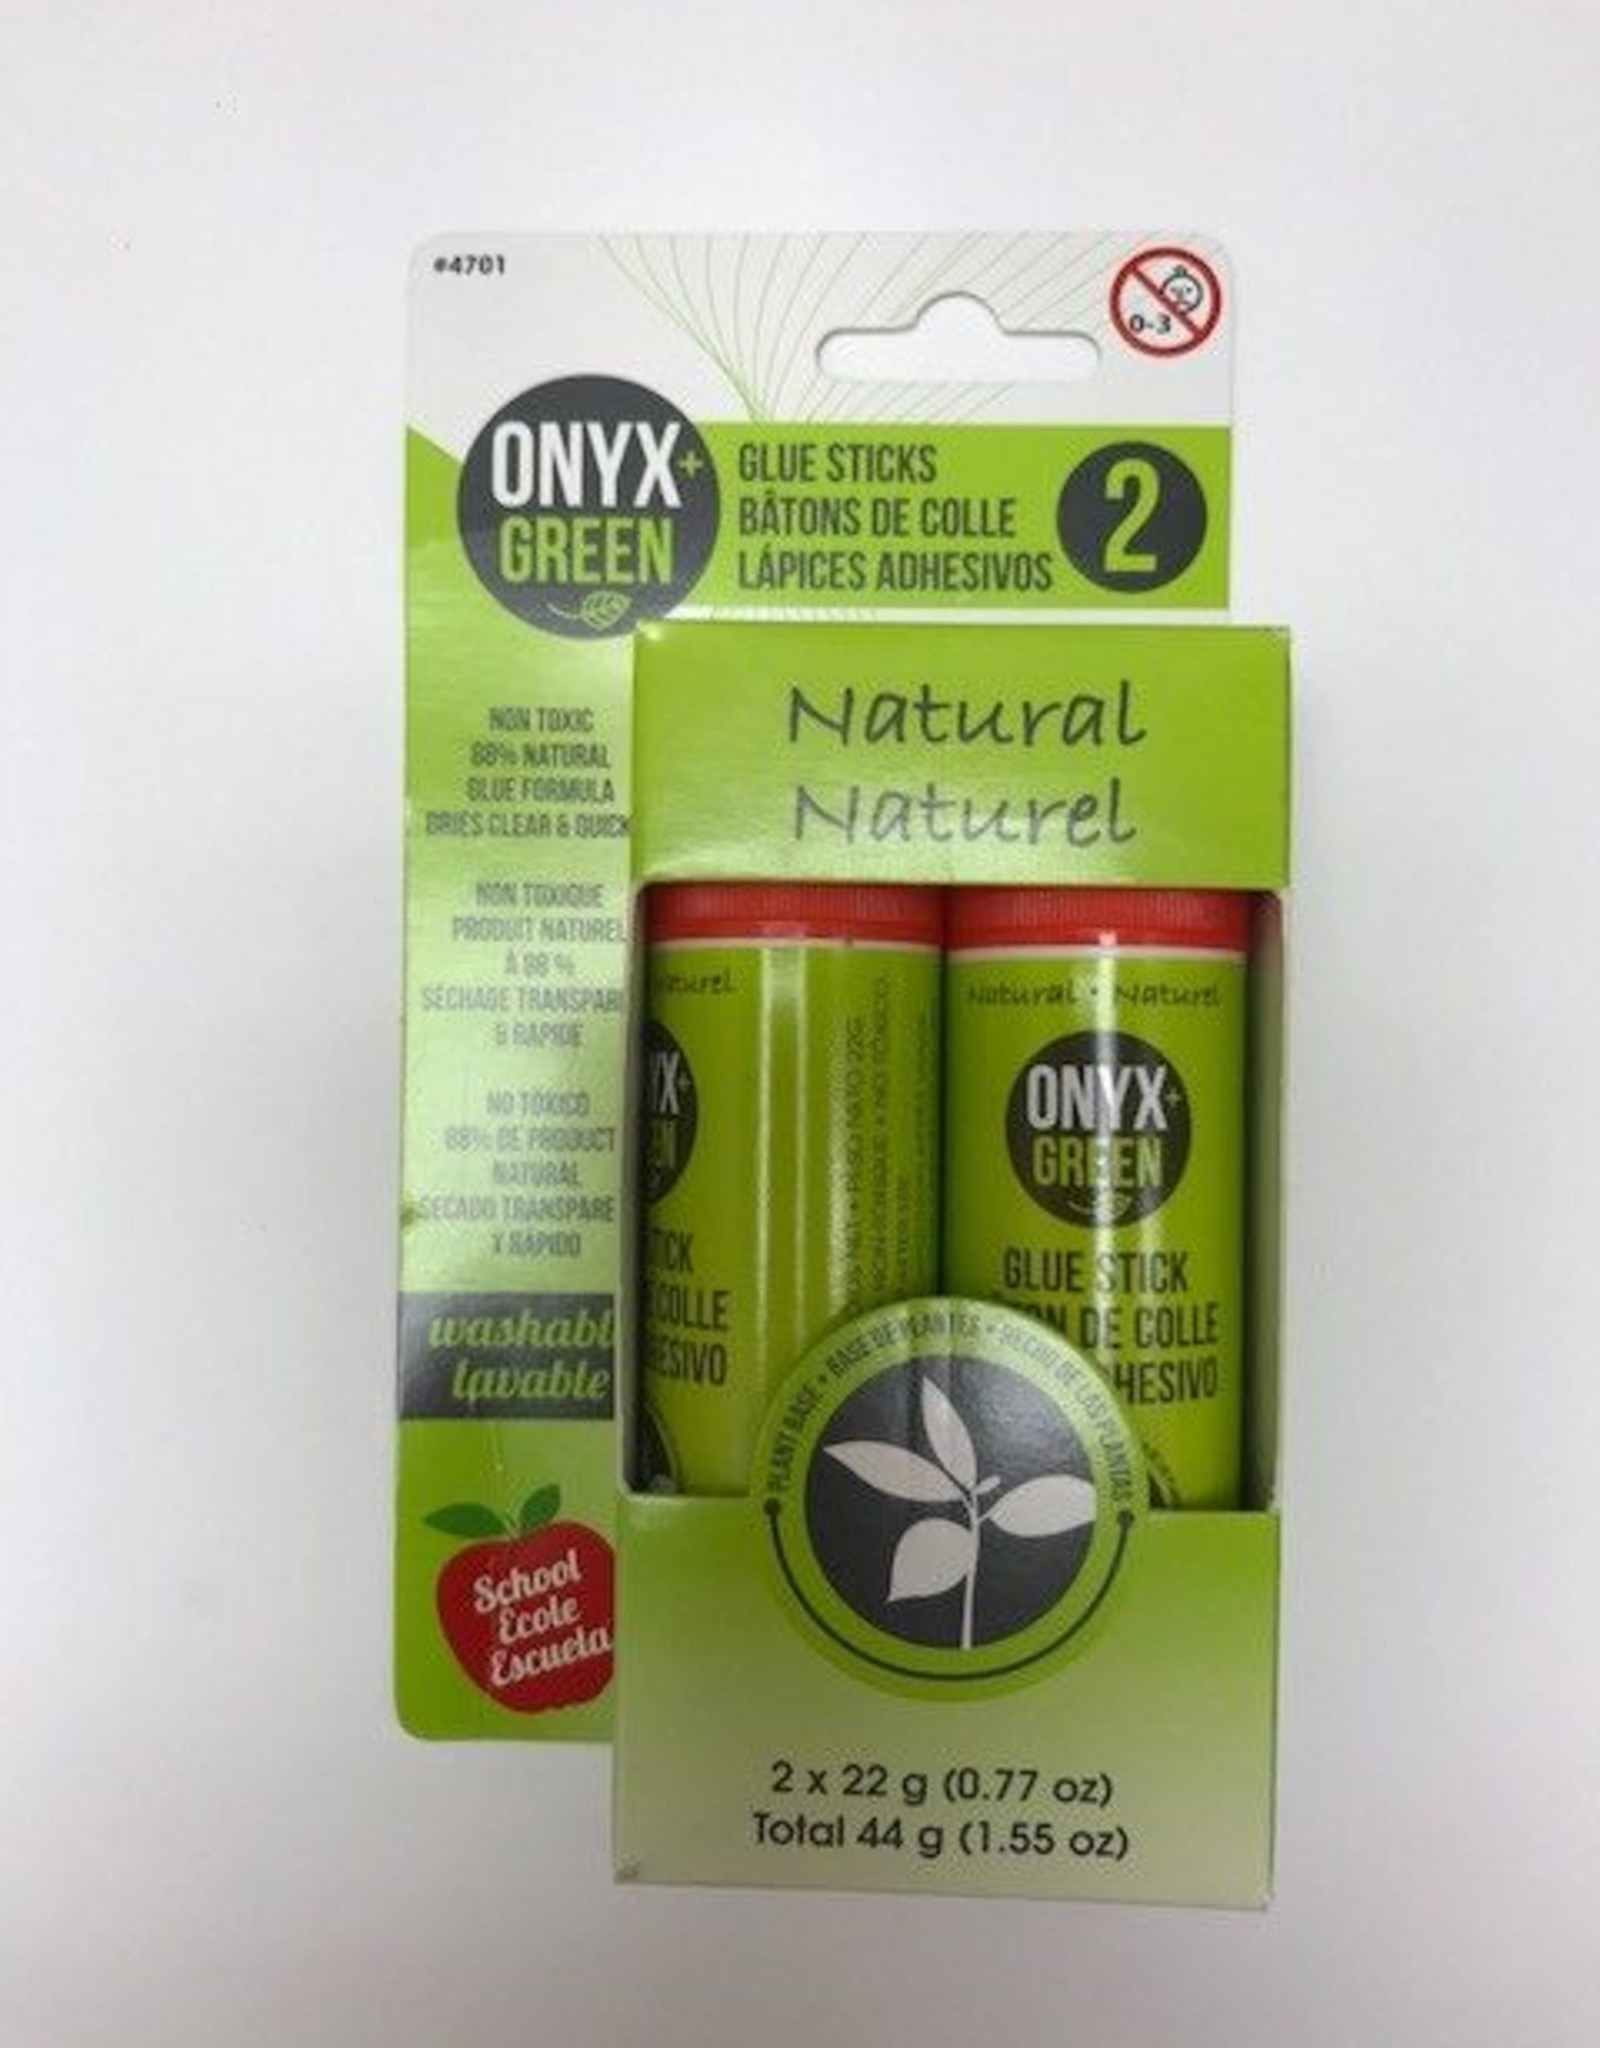 ONXG Onyx Green Glue Stick